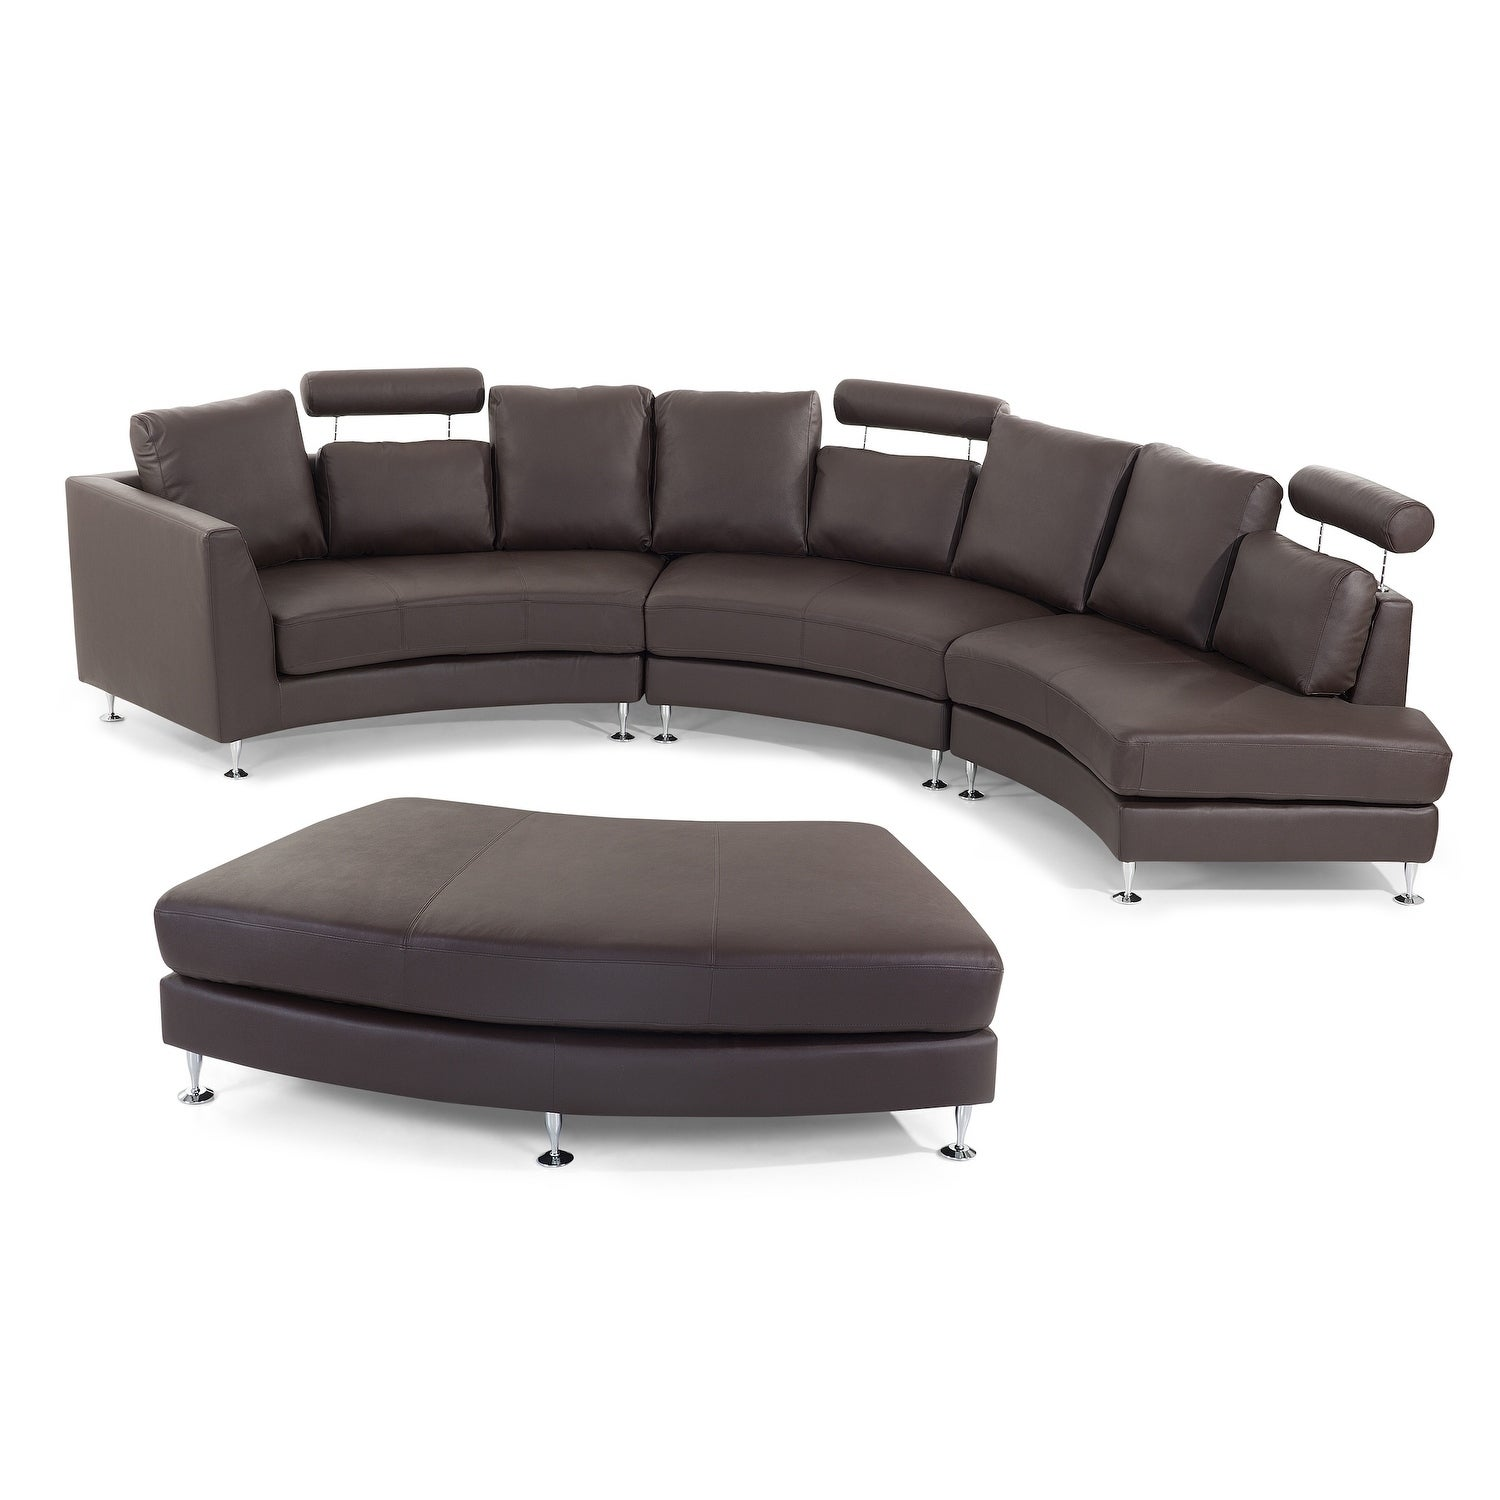 Velago Rossini Brown Modern Circular Sectional Sofa Dc